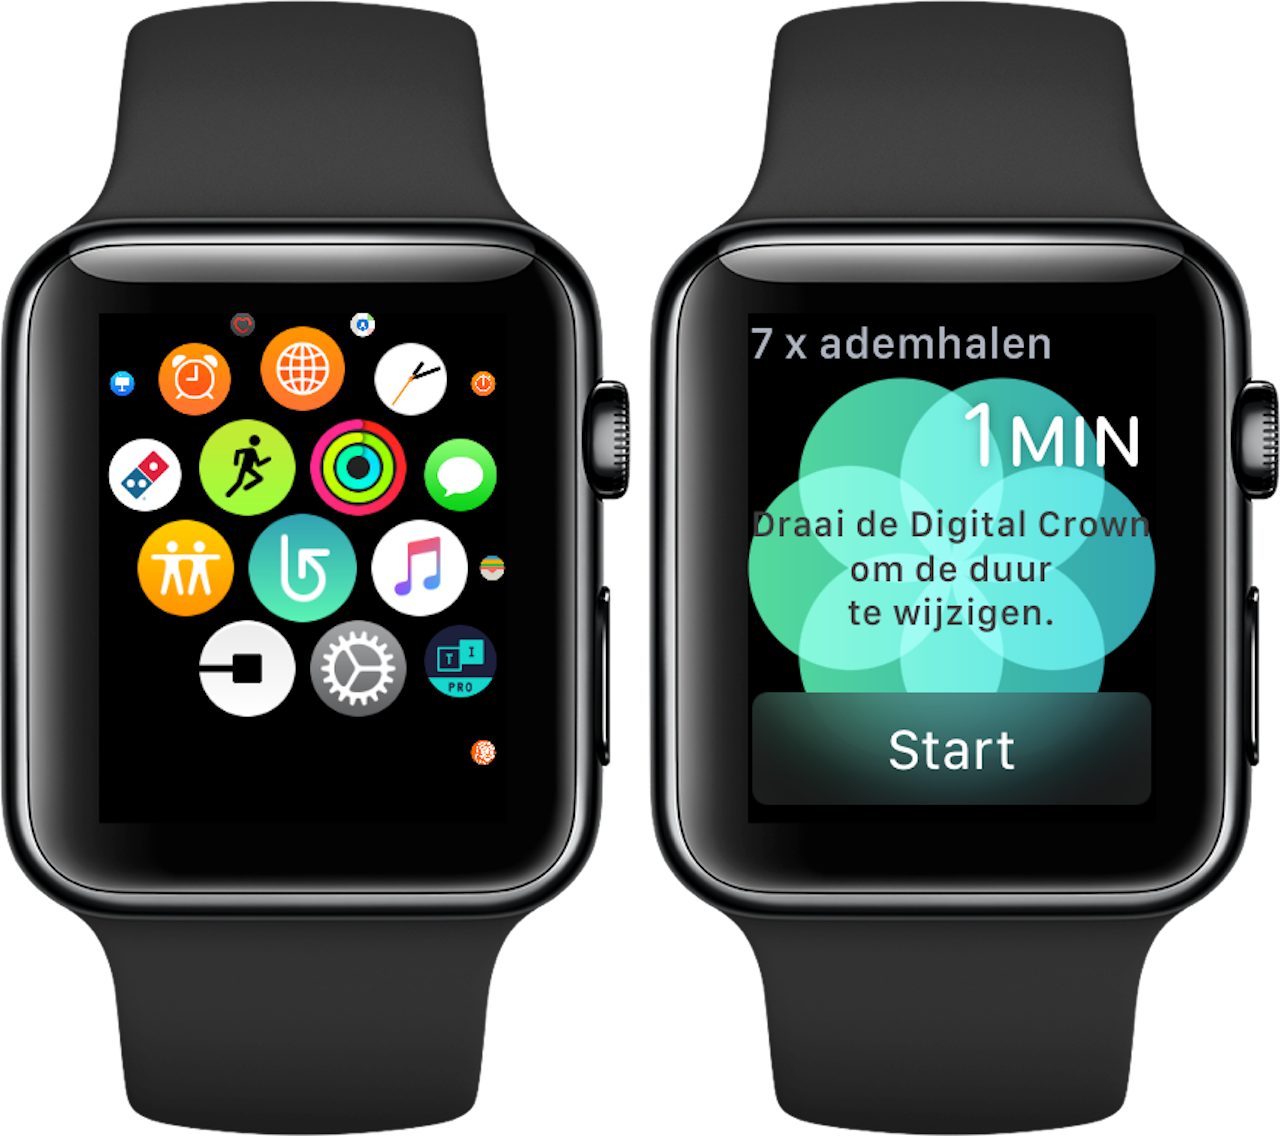 Ademhaling-app Apple Watch 1